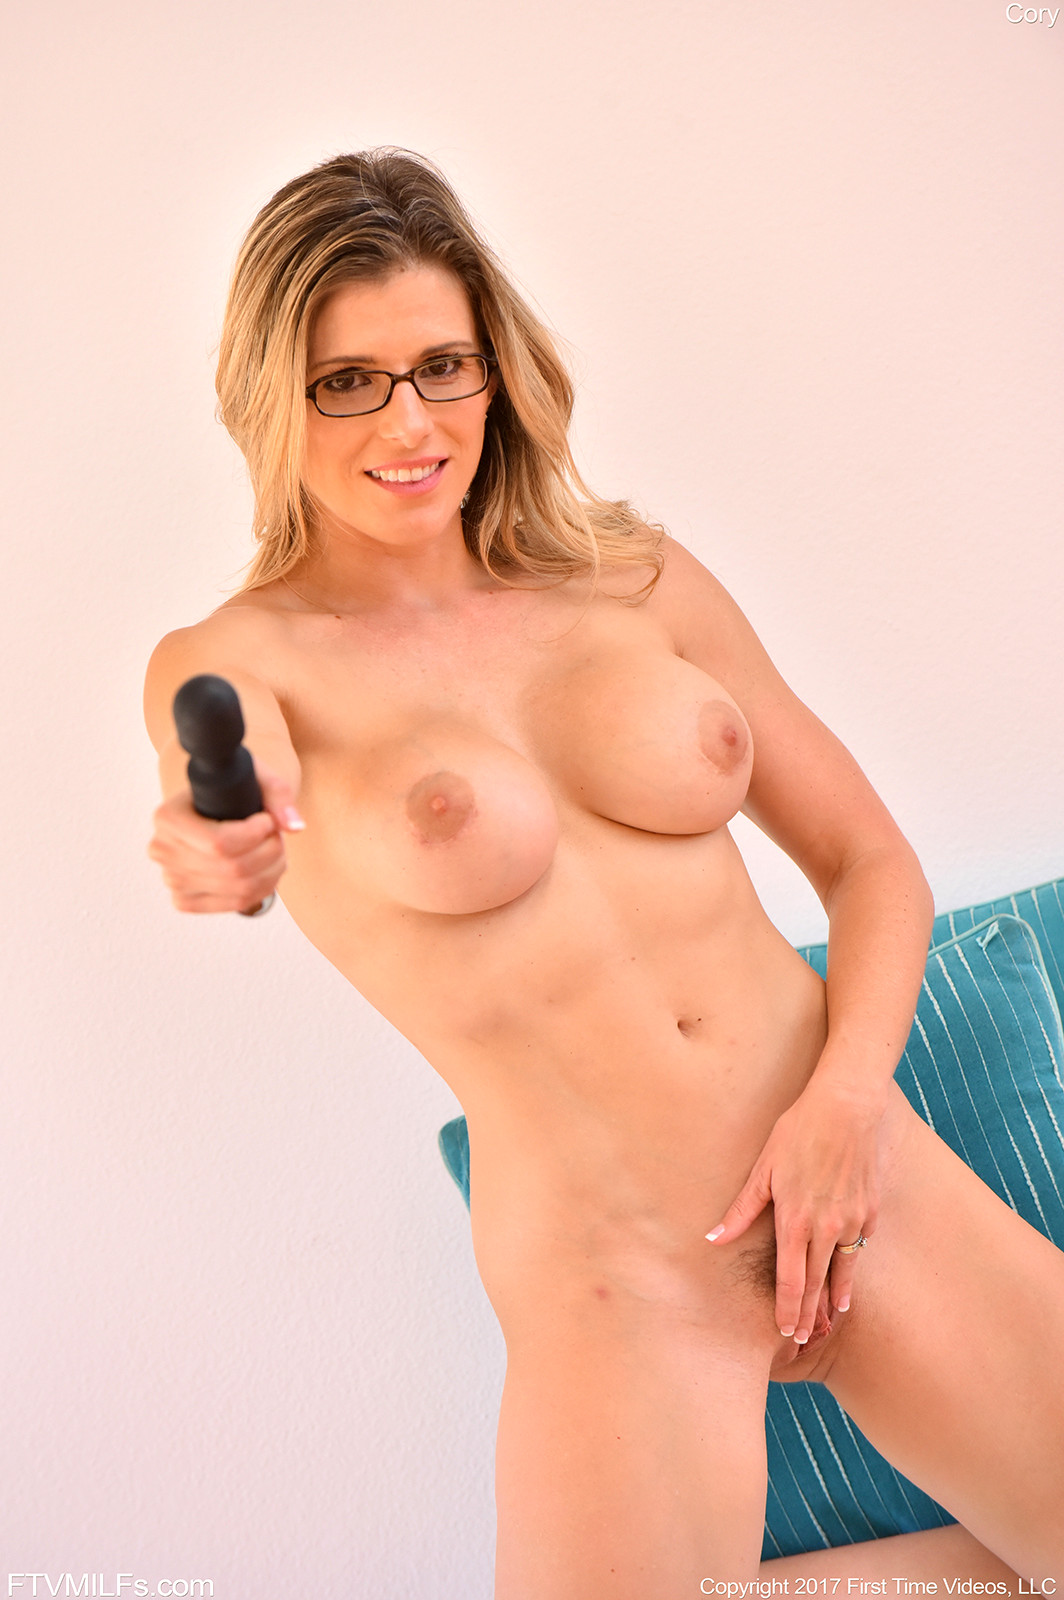 Cory chase videos